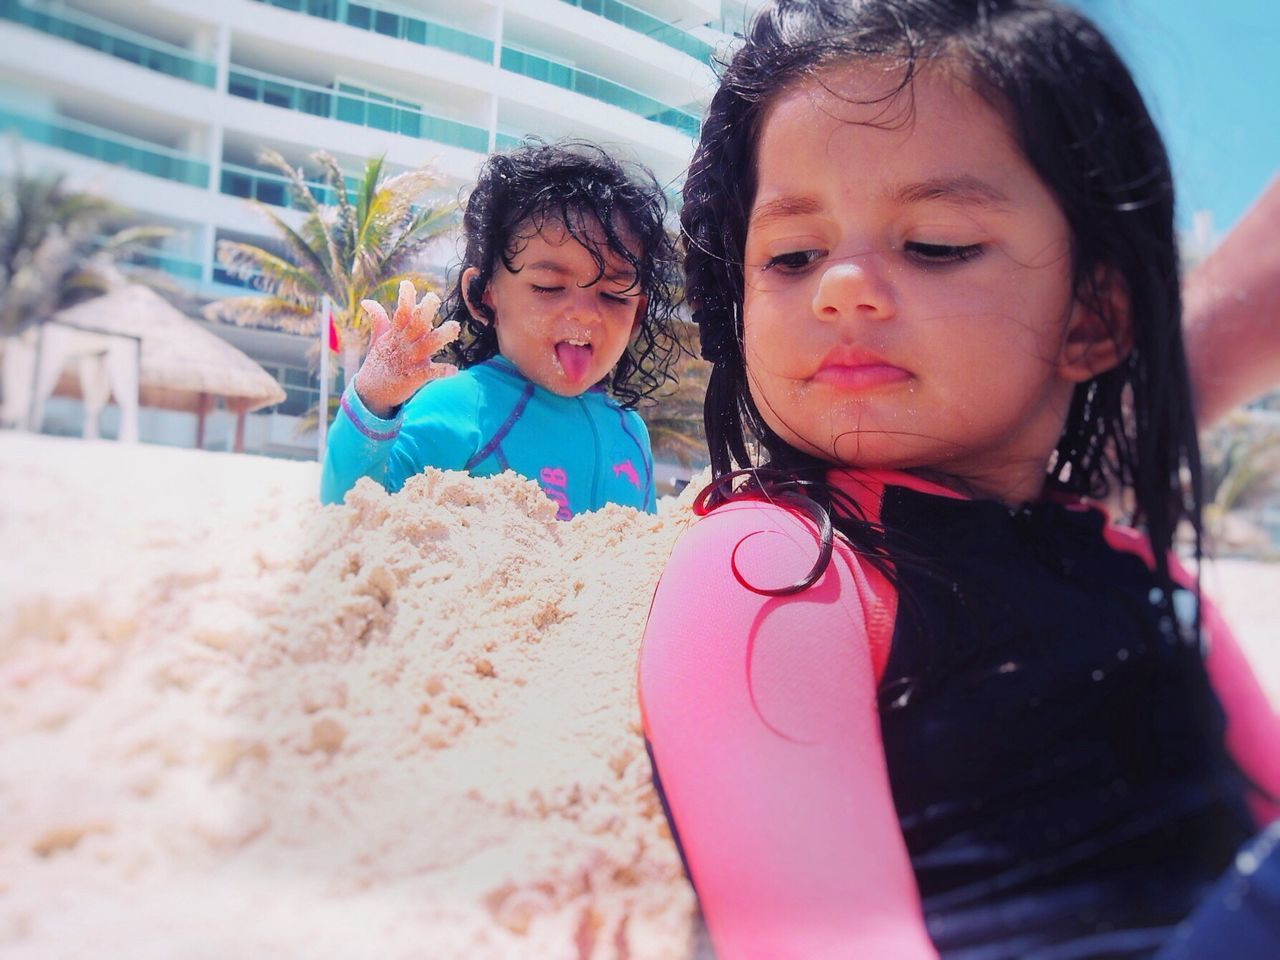 Don't Eat Sand ! Childhood Girls Innocence Baby Cute Toddler  Real People Family Daughter Togetherness Outdoors Lifestyles Curly Hair Day Child Beach Travel EyeEmNewHere Eating Sand Eating Funny Funny Faces Close-up